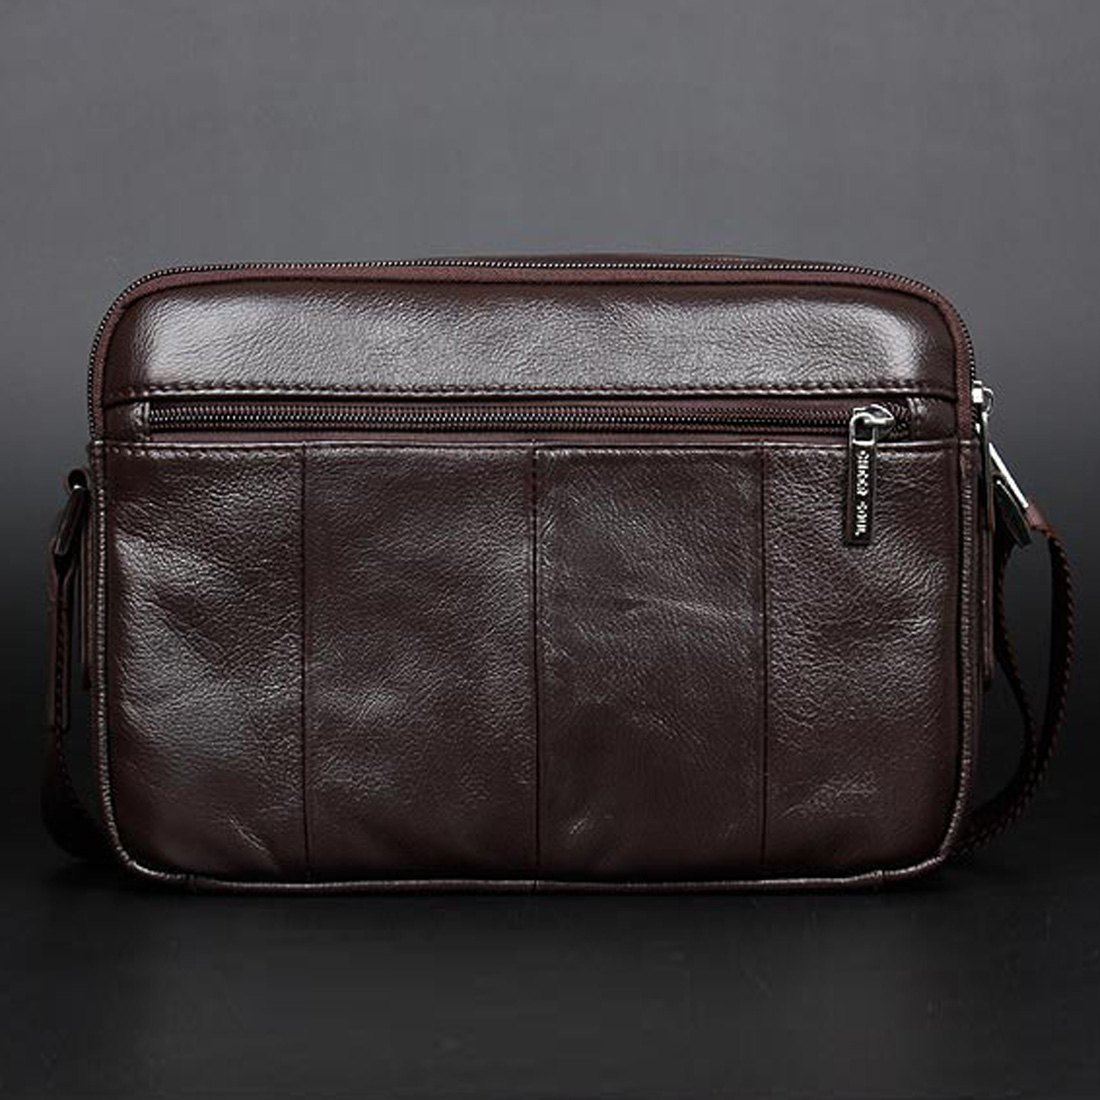 Genuine Leather Men Classical Messenger Bags Fashion Casual Business Shoulder Handbags for man,2015 New Men's Travel Bags Bolsas